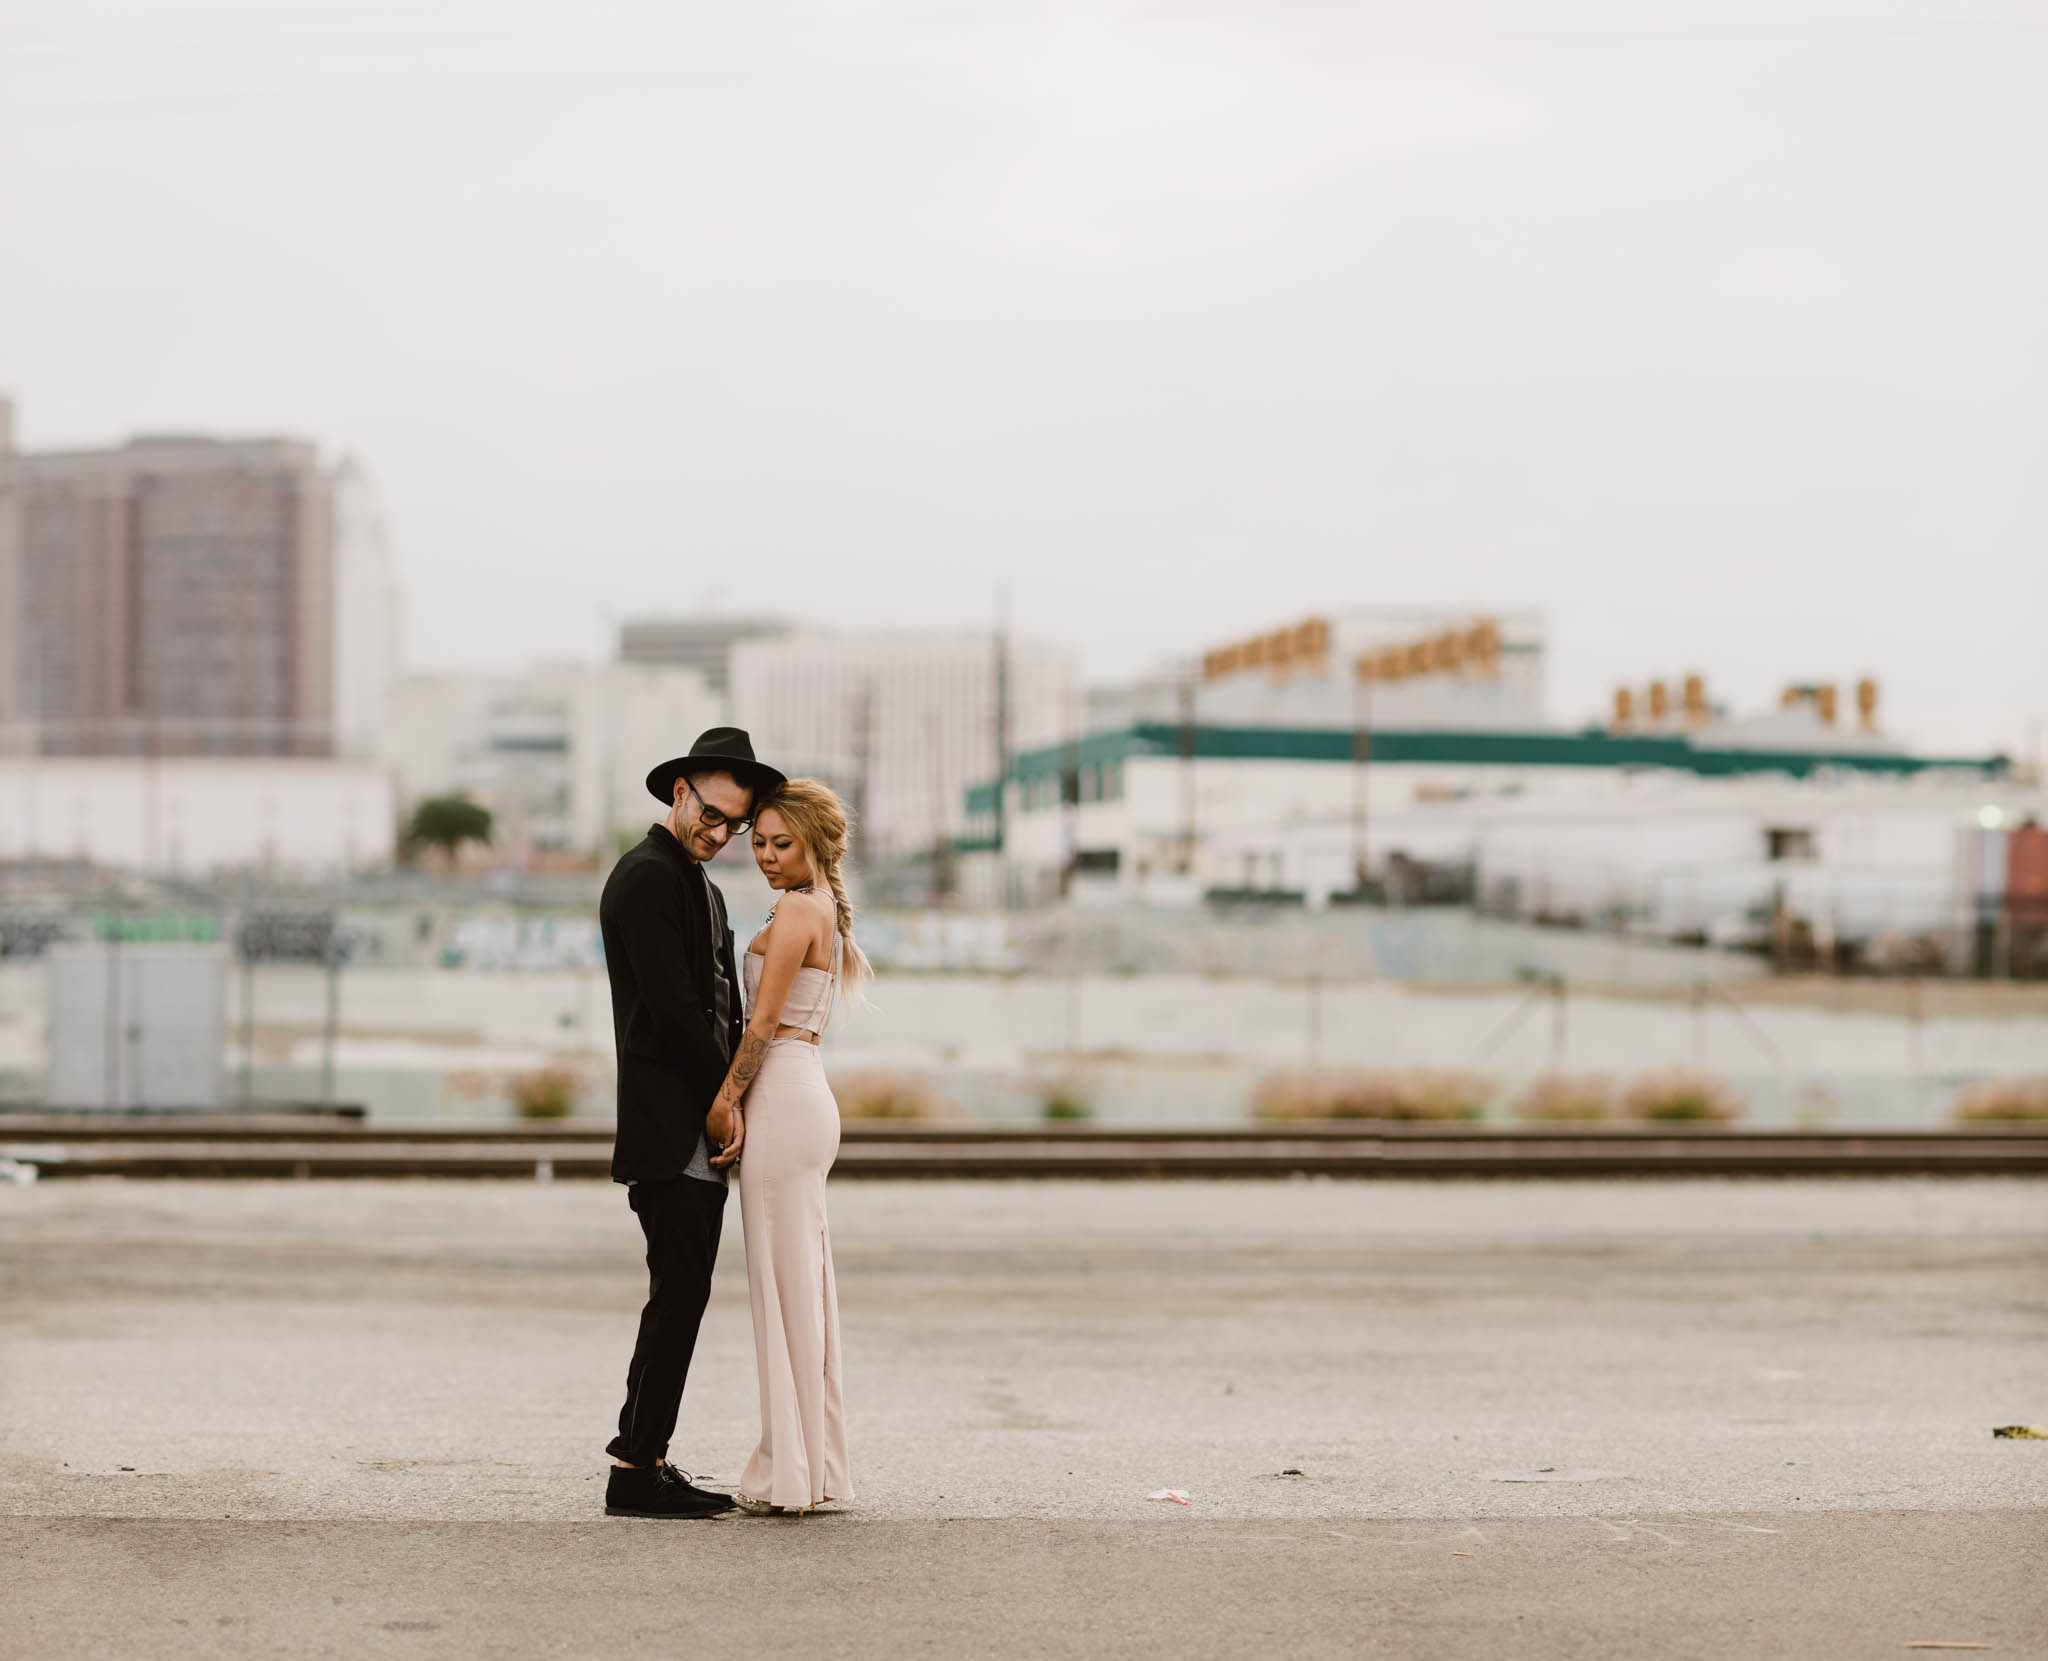 ©Isaiah-&-Taylor-Photography---Downtown-Los-Angeles-Skyline-Engagement-025.jpg